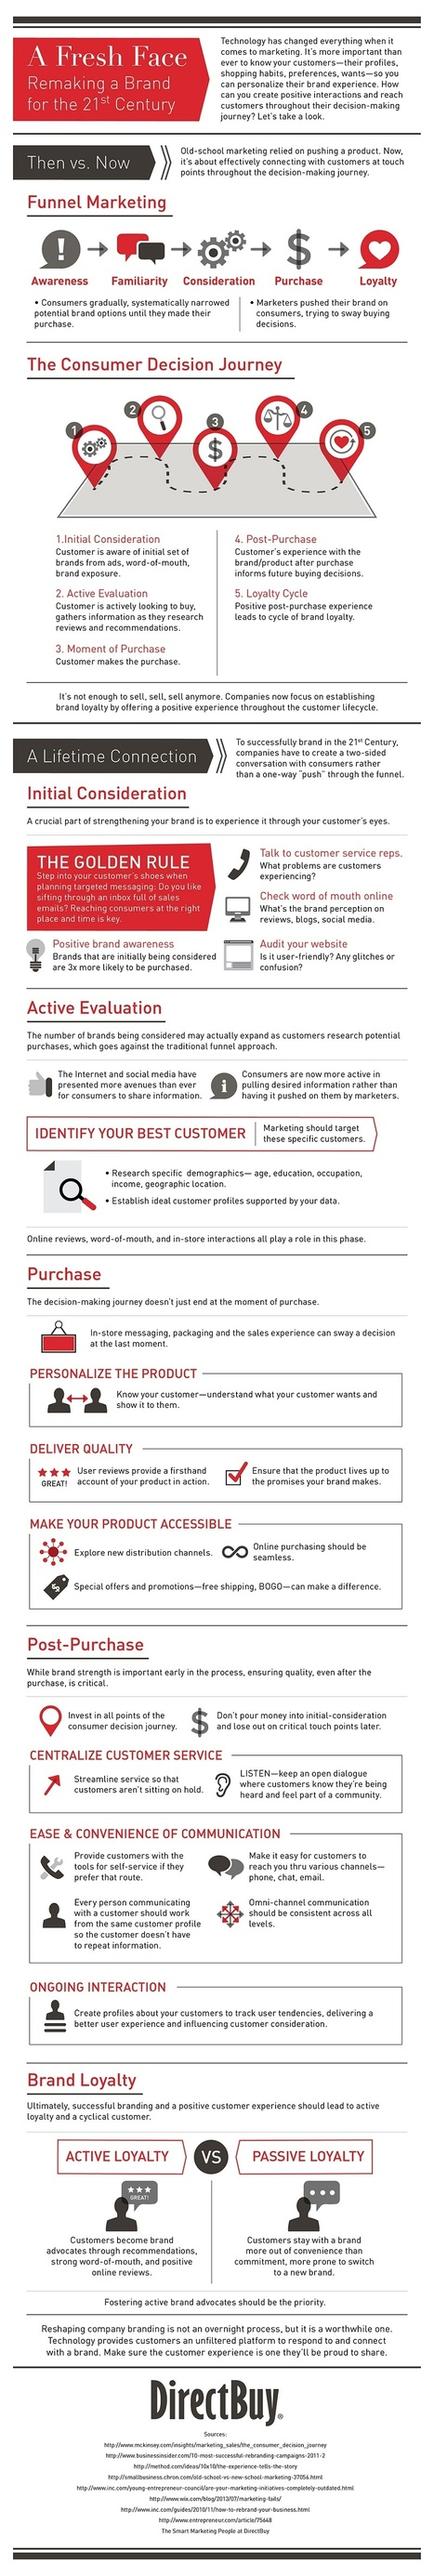 How to Reinvent Your Marketing for This Century - Infographic | New Customer - Passenger Experience | Scoop.it